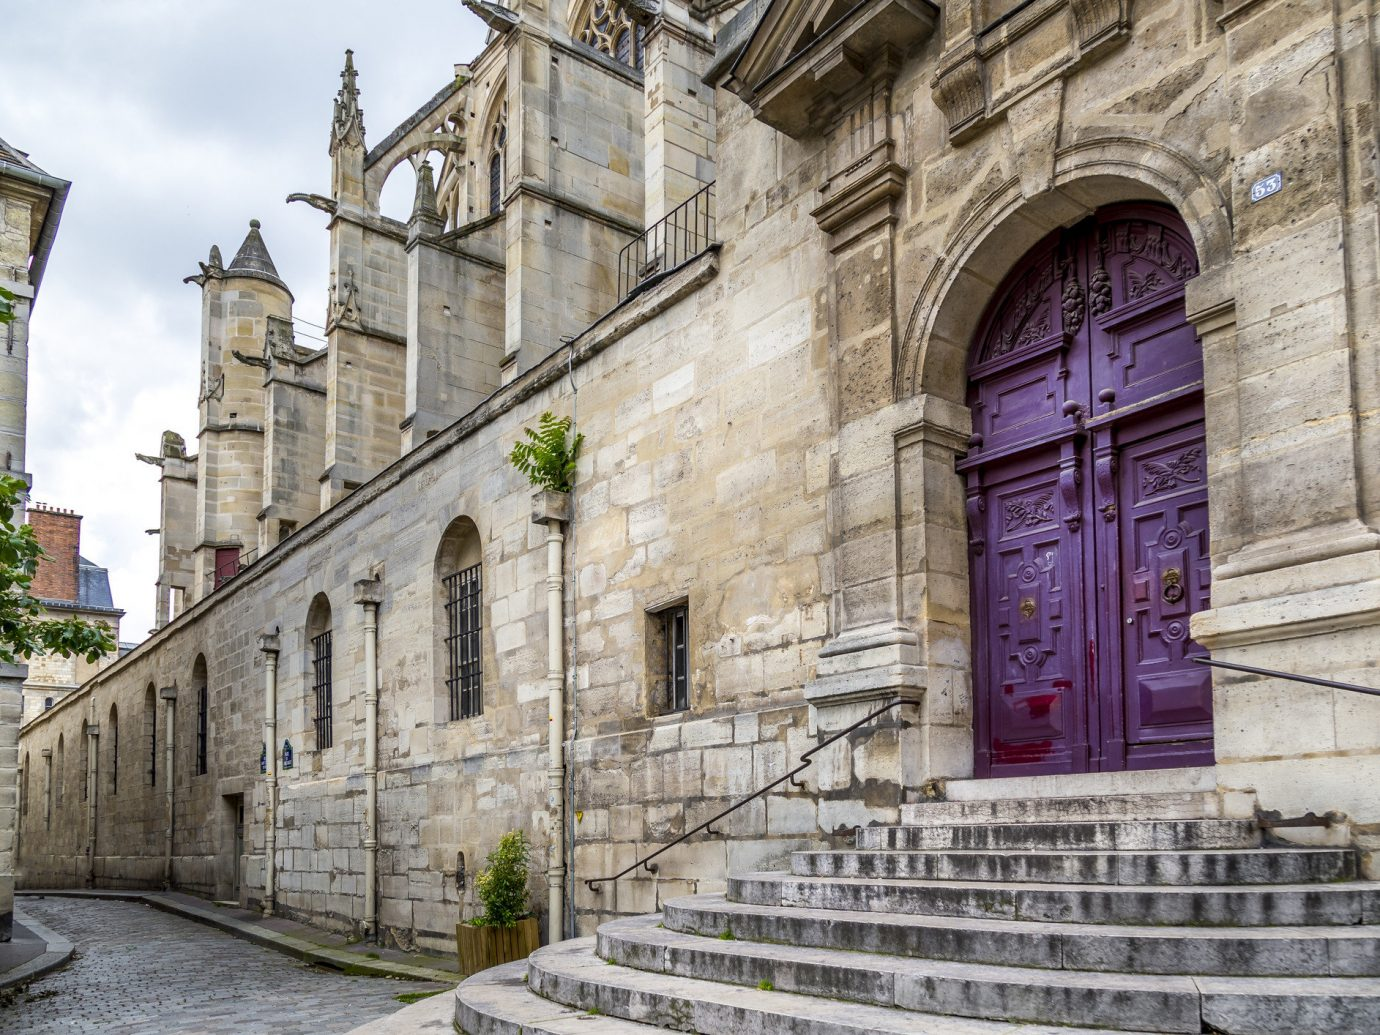 Offbeat building outdoor stone Town old landmark urban area Architecture neighbourhood street facade tourism ancient history place of worship Church monastery cathedral synagogue history arch